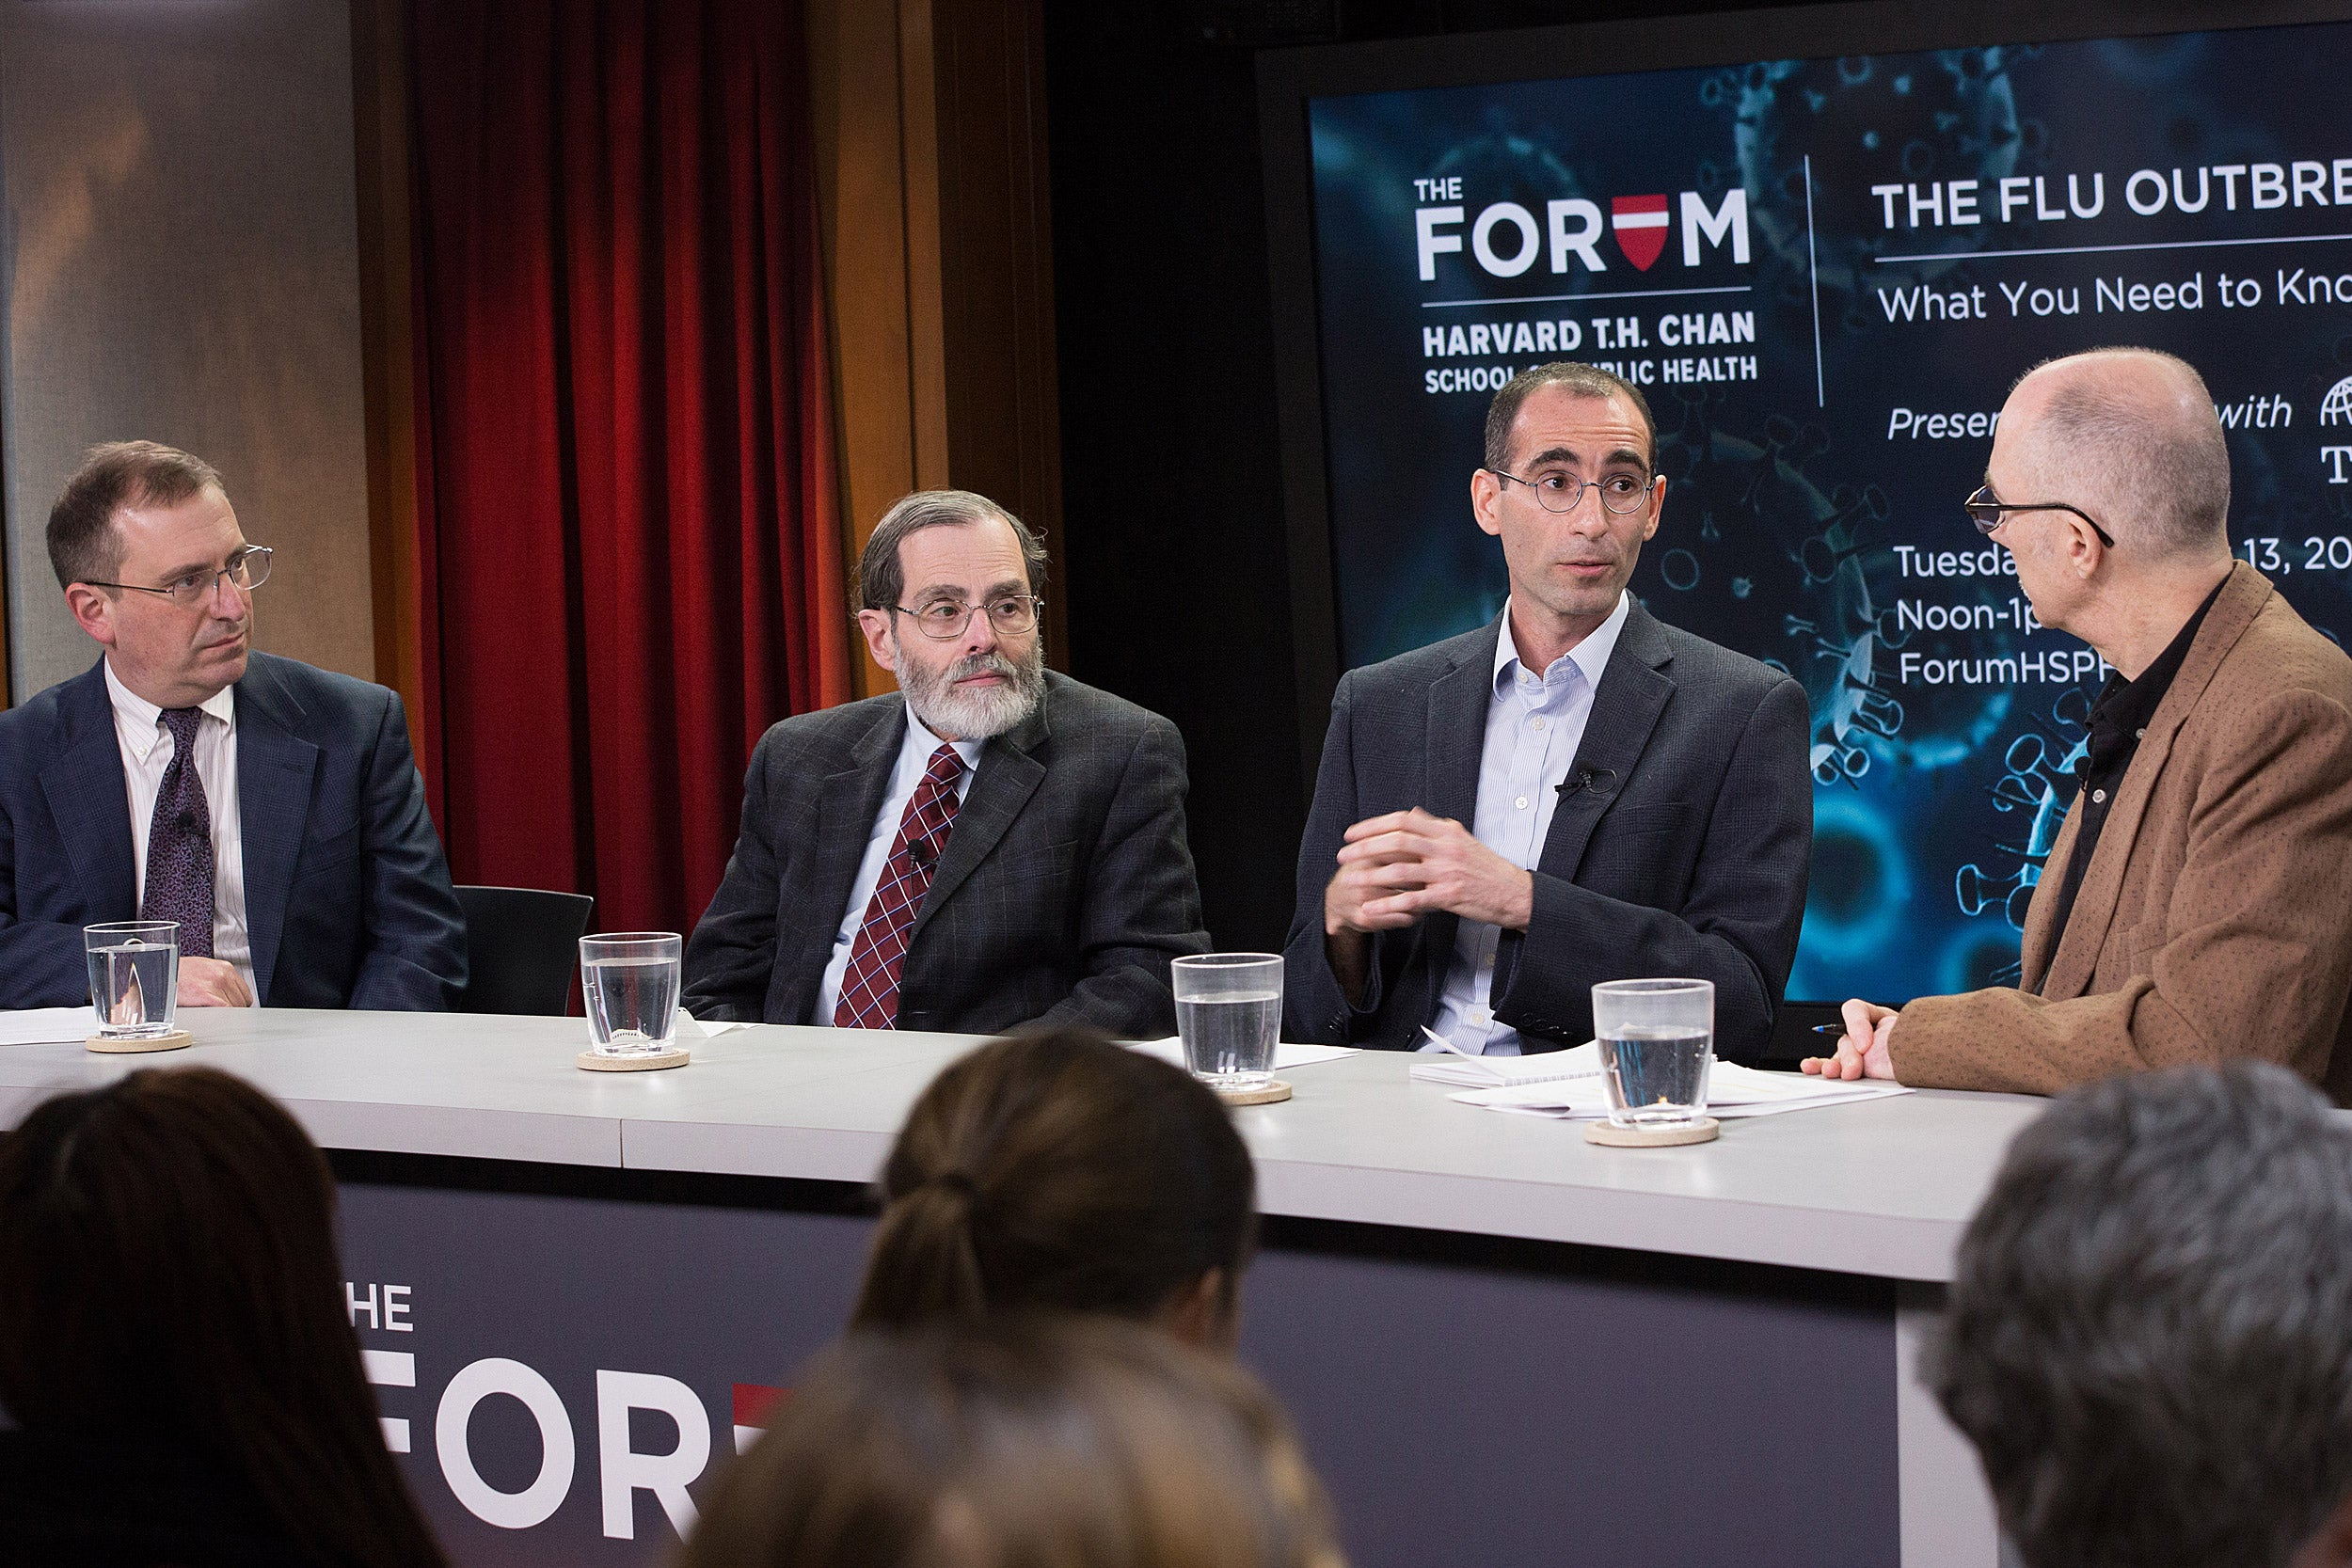 During a Chan School discussion on the flu, panelists Marc Lipsitch (from left), Alfred DeMaria, Yonatan Grad, and moderator Peter Thomson focused on the dangers of not getting vaccinated during a particularly virulent flu season.